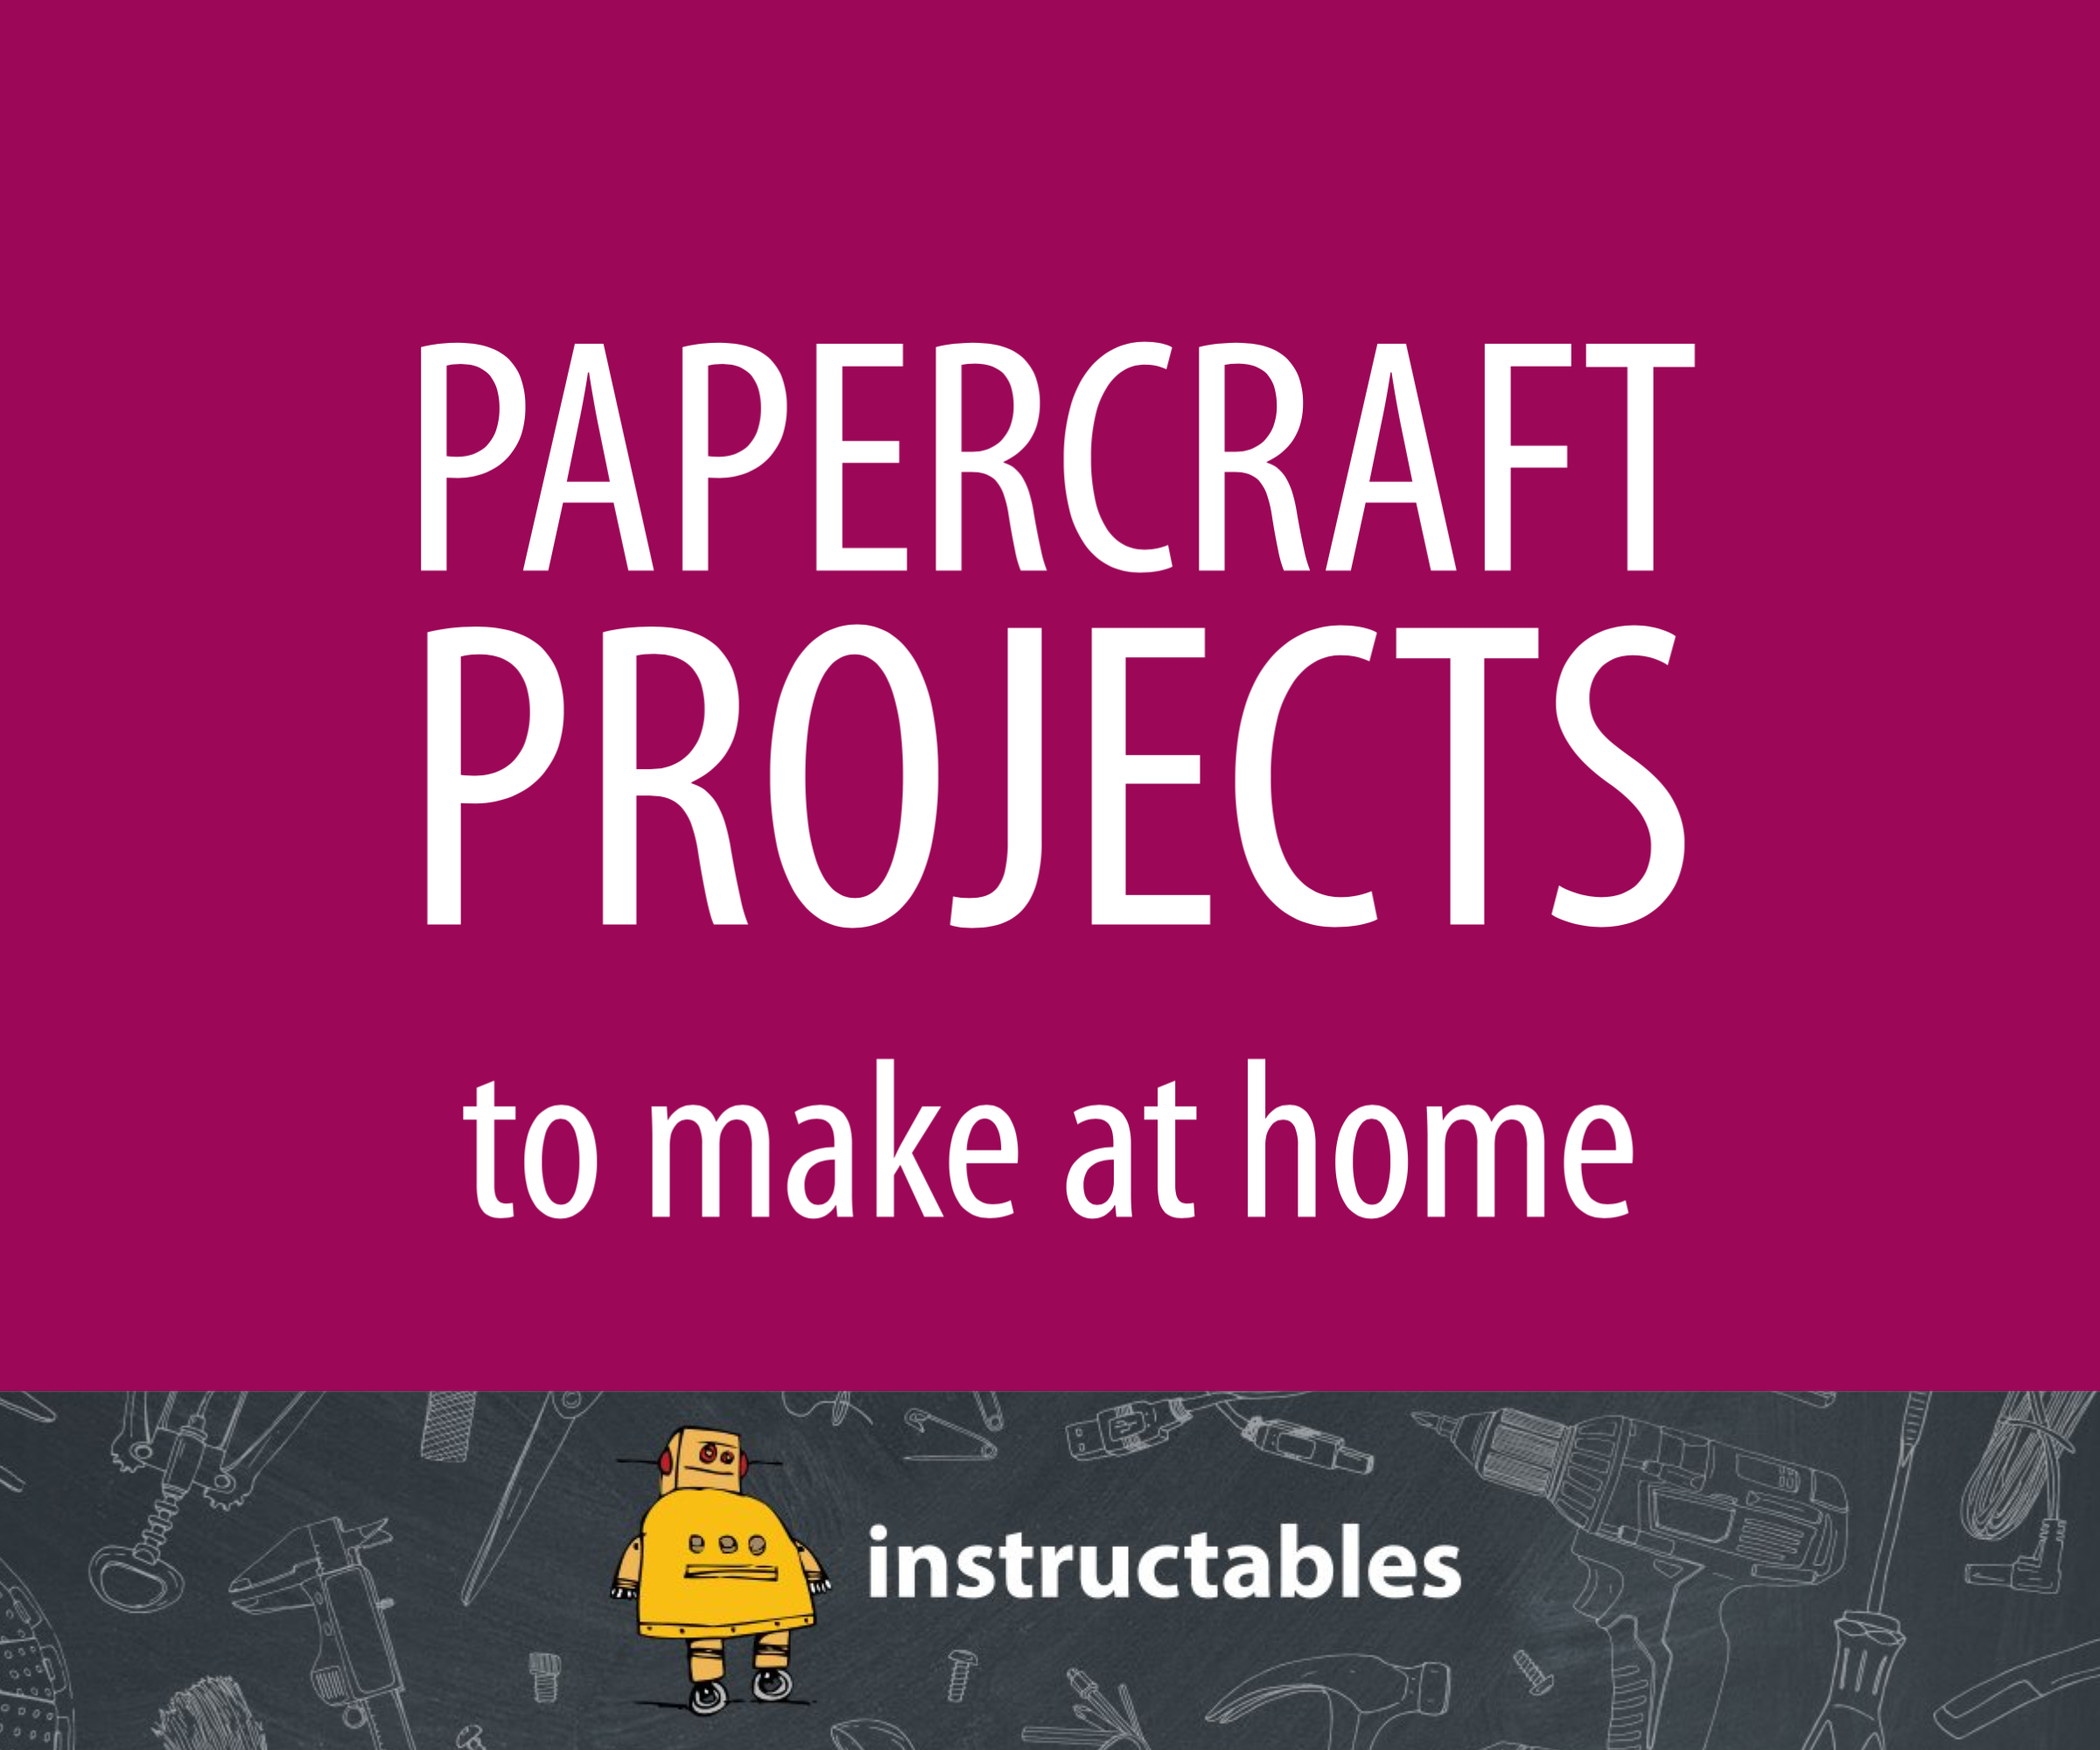 Papercraft Projects to Make at Home